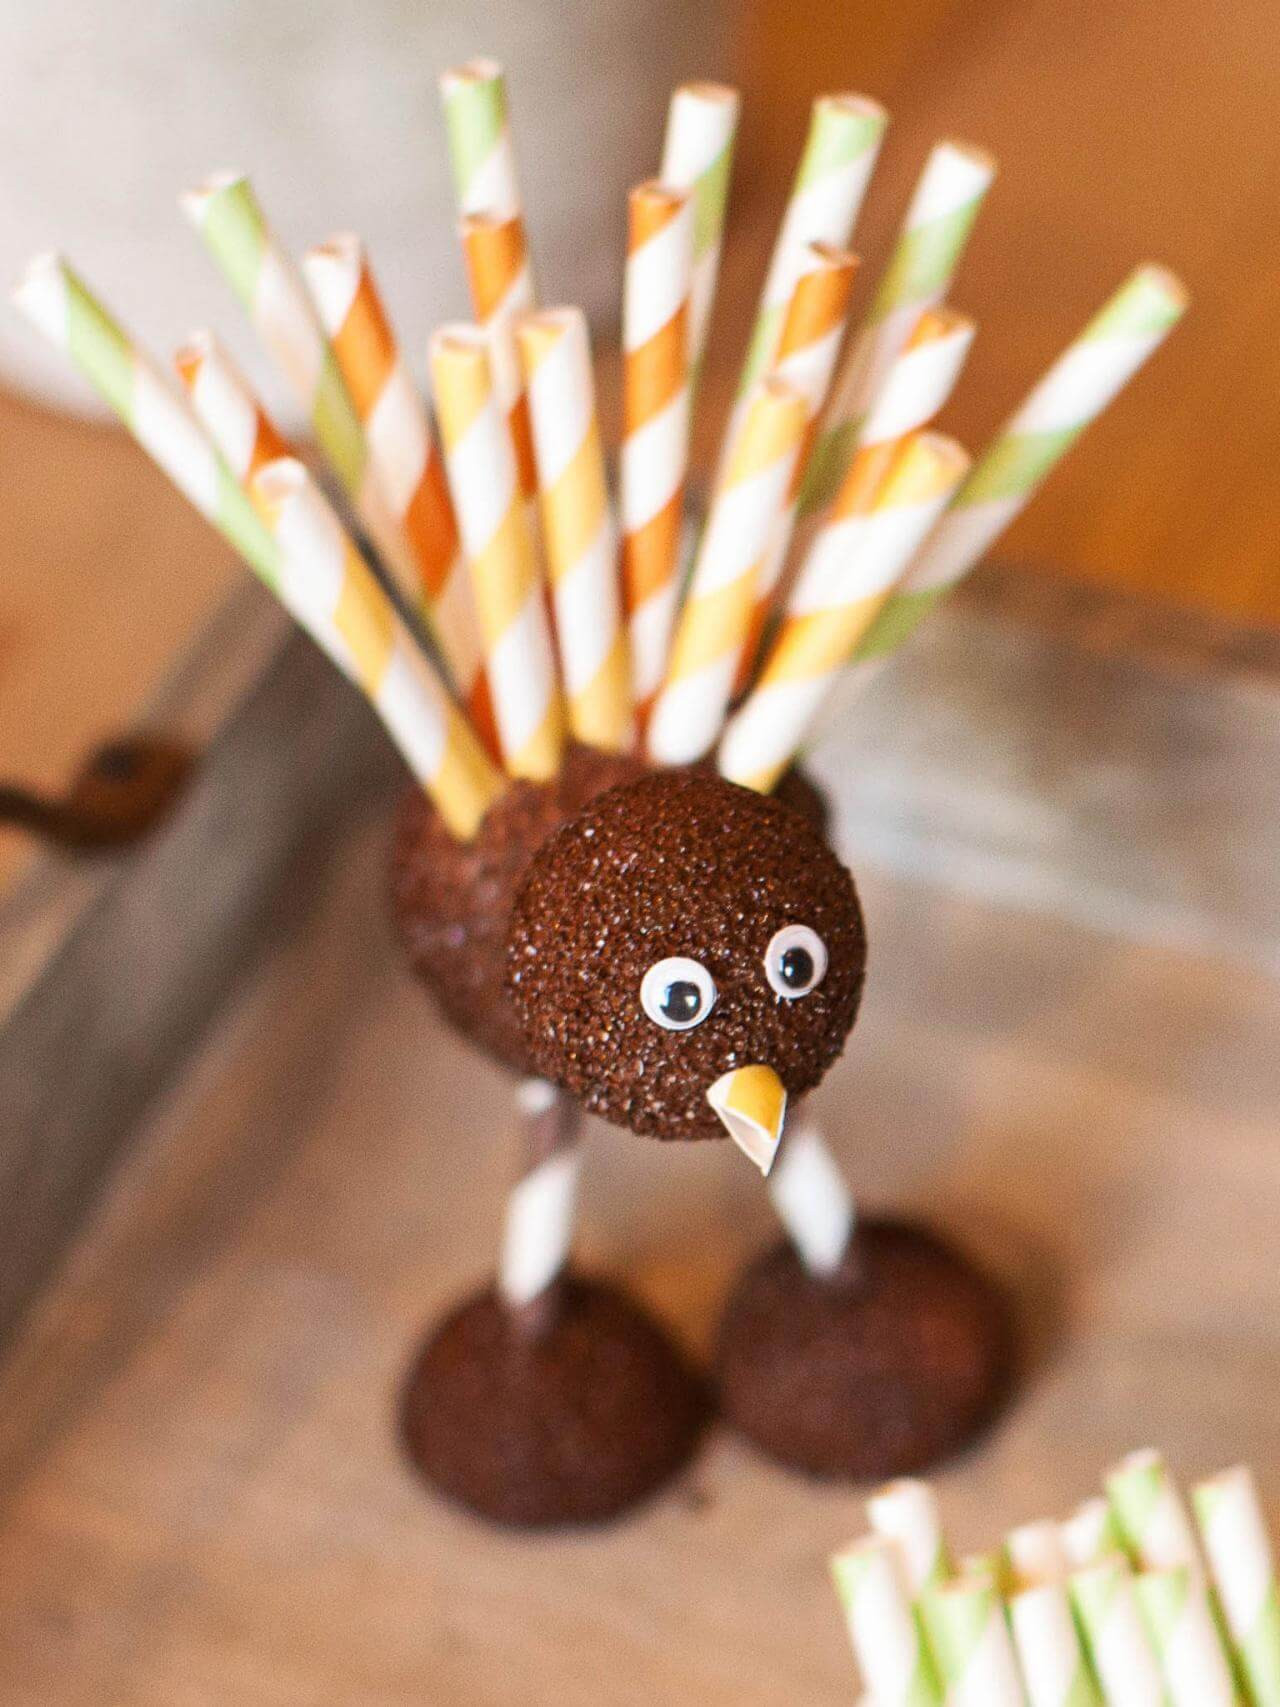 Homemade Crafts For Toddlers  22 Easy Thanksgiving Crafts For Kids – Architectures Ideas